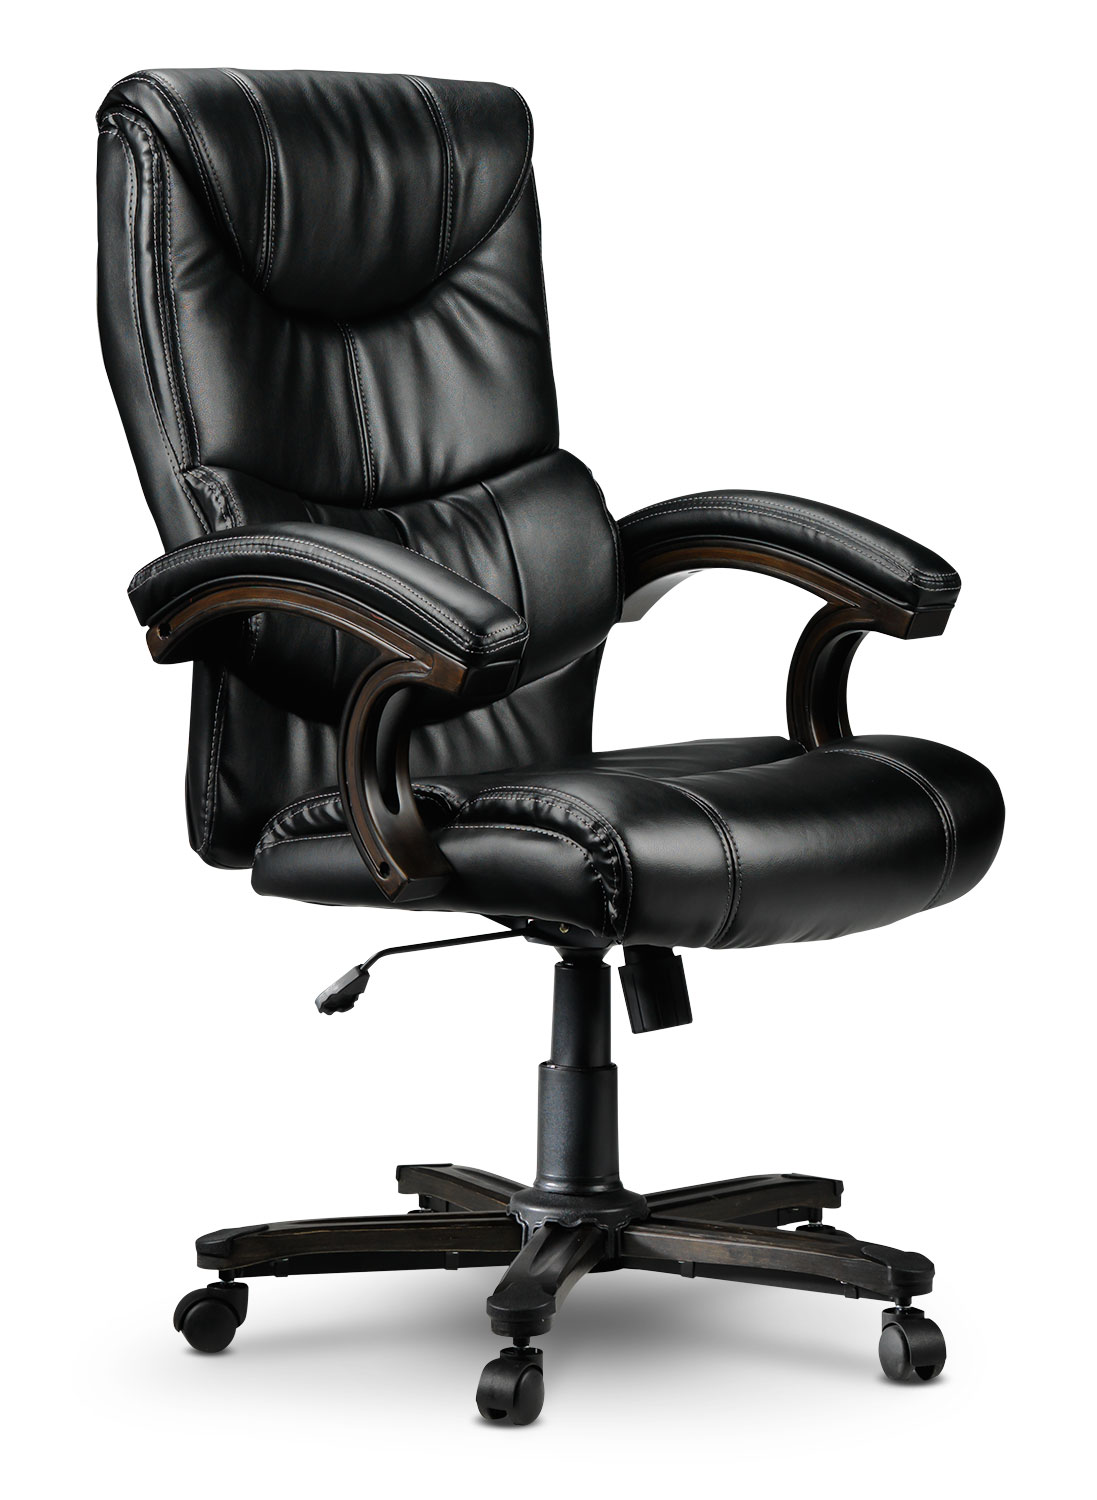 Home Office Furniture - Copley Office Chair